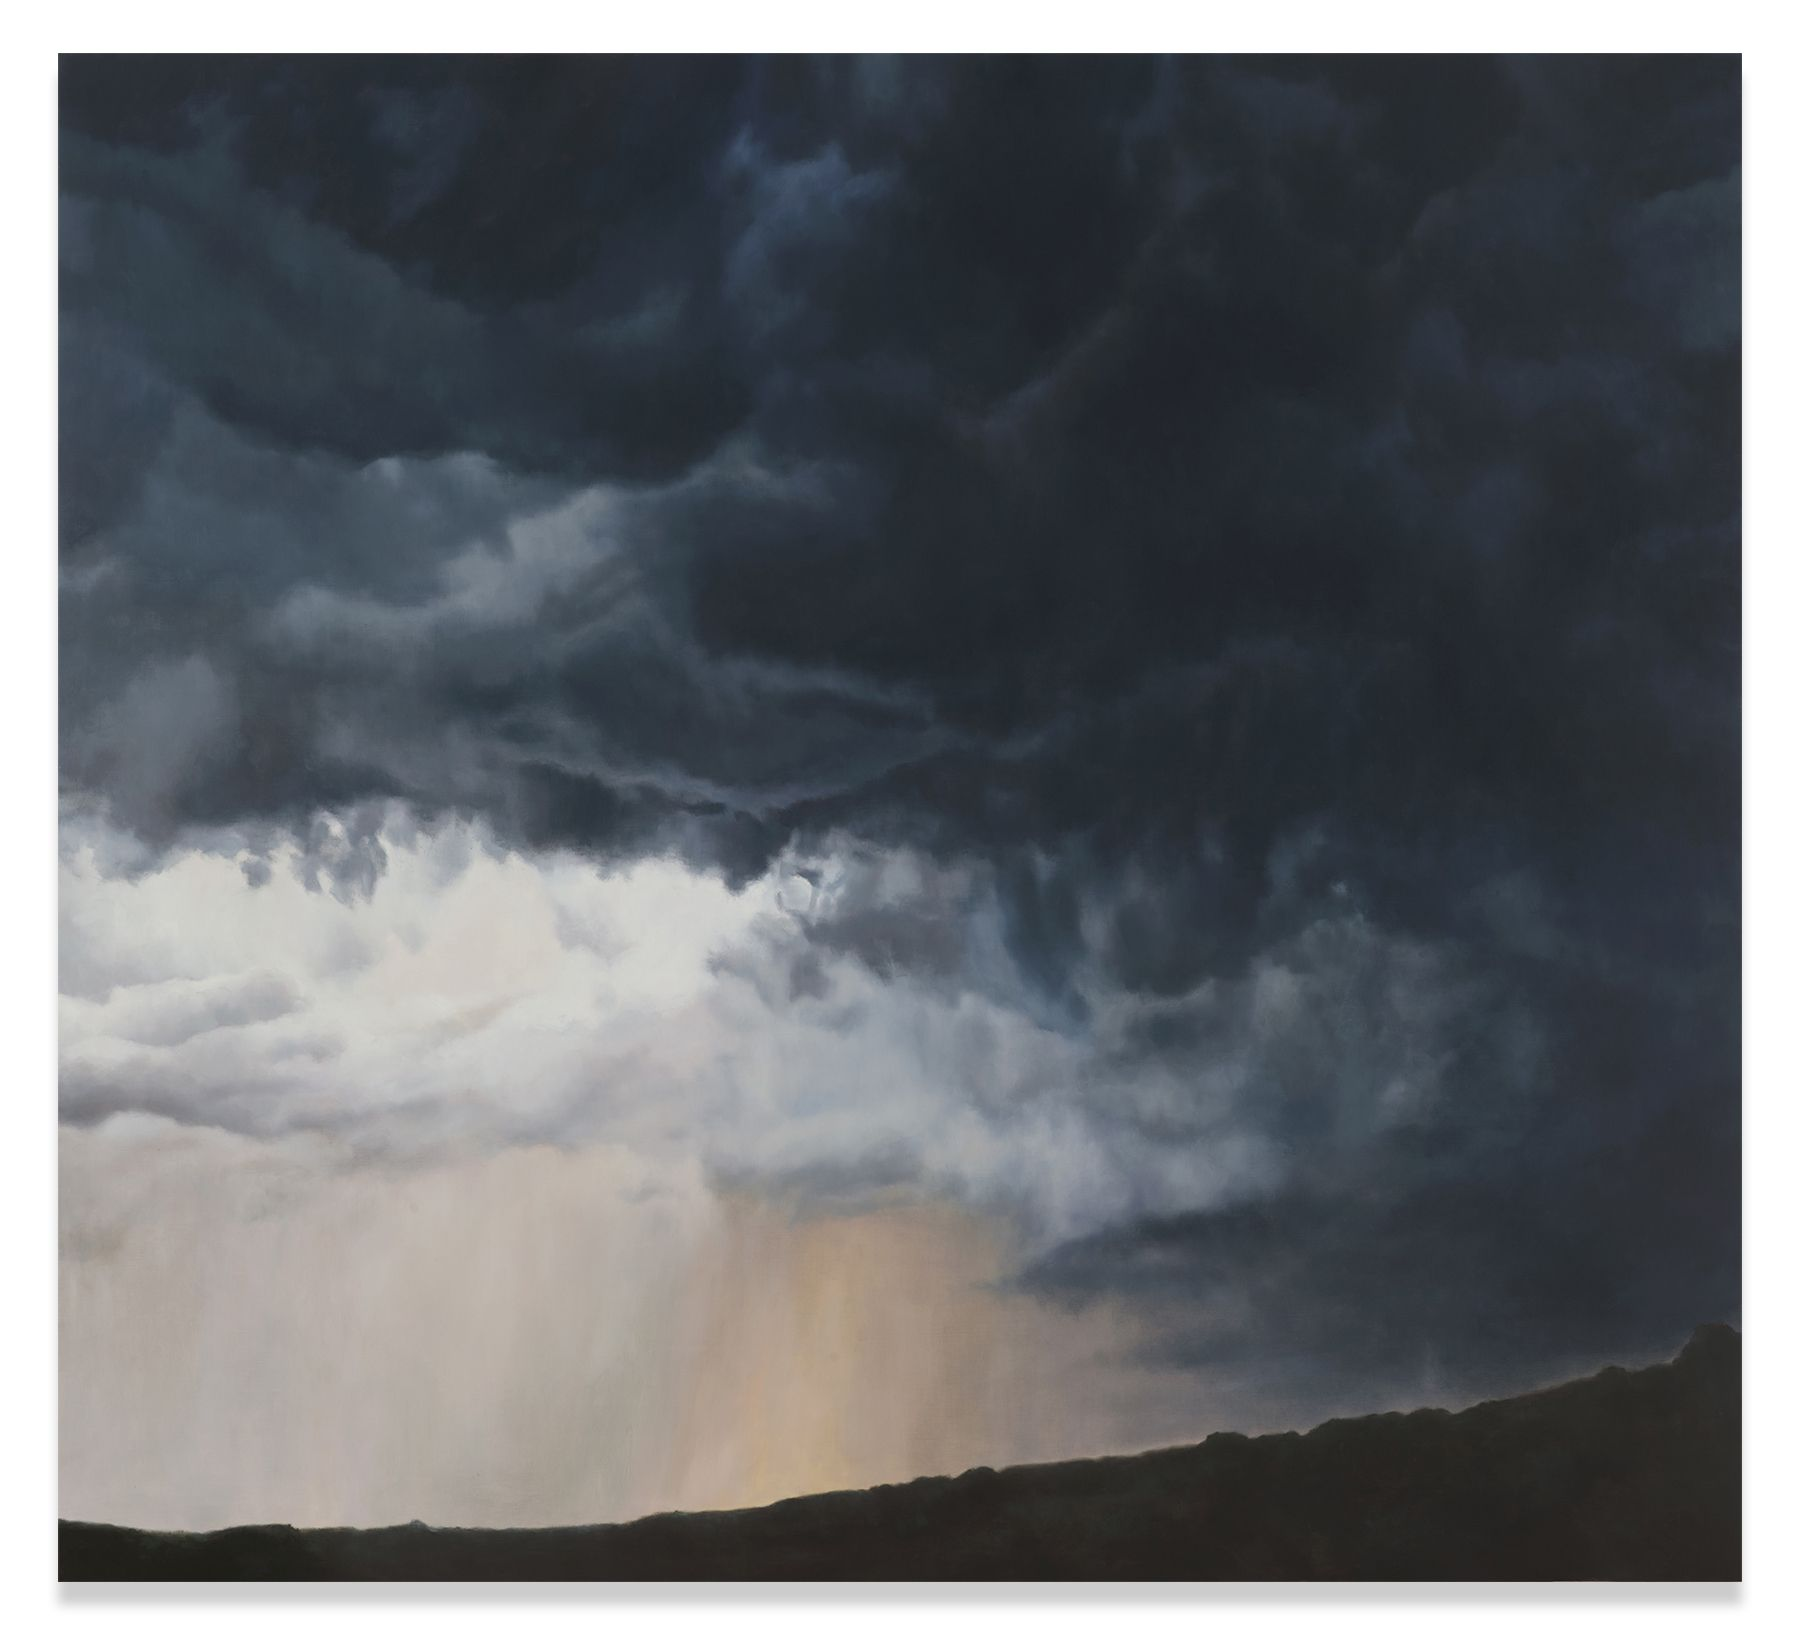 Big Storm Light, 2016,Oil on linen,70 x 77 inches,177.8 x 195.6 cm,MMG#30409